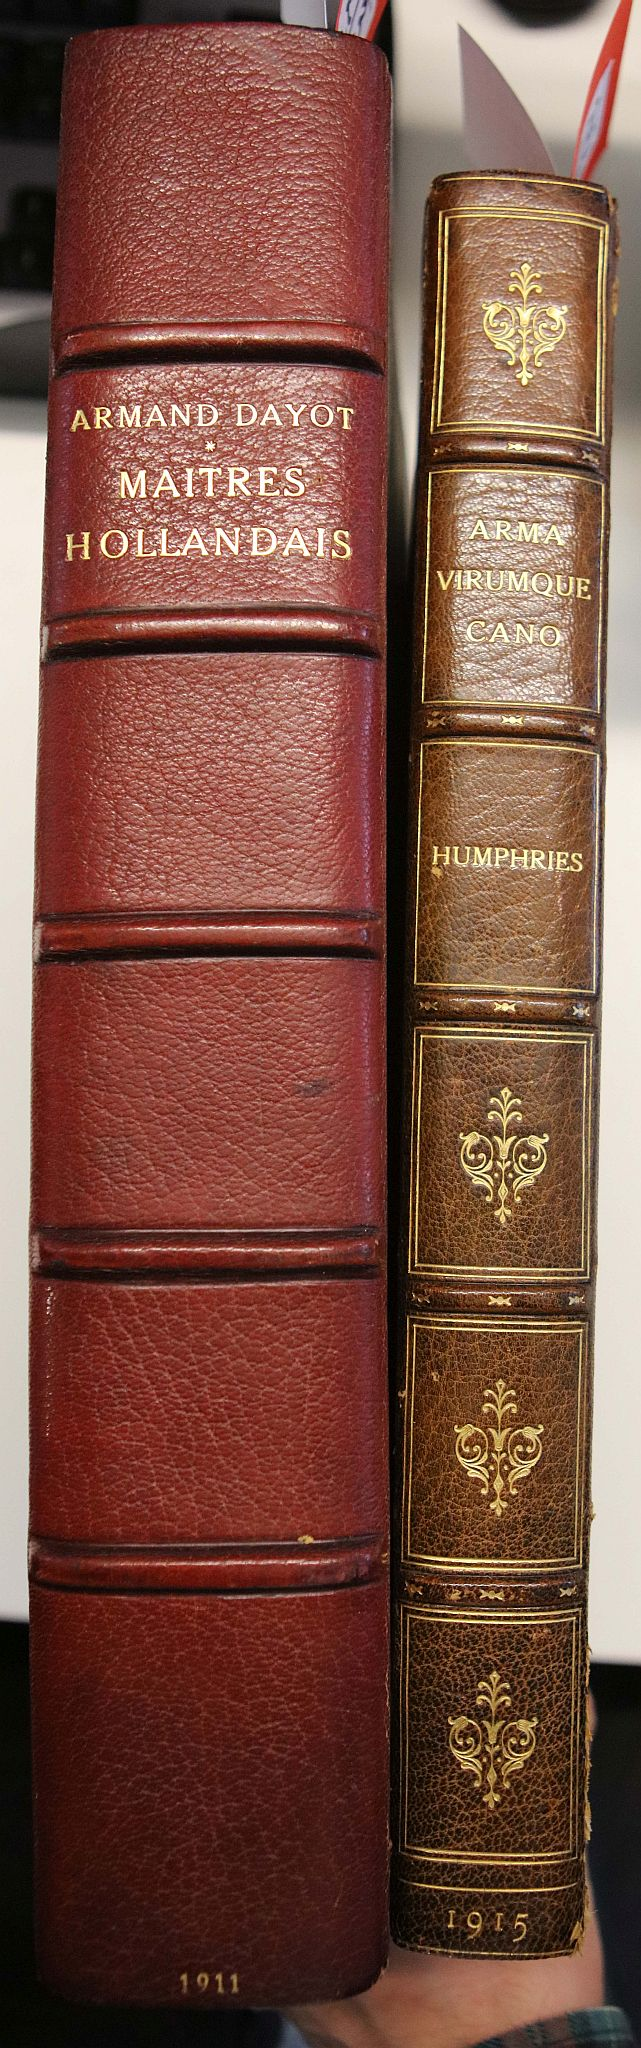 DAYOT, Armand(1851–1934). Grands & Petits Maitres Hollandais. Paris: Georges Petit, [n.d]. Folio. Engraved portraits (occasional light spotting). Contemporary half red morocco by O. Herfurth,original wrappers bound in(boards rubbed). Provenance: Lammers (bookplate). LIMITED EDITION OF 650 COPIES OF WHICH THIS IS NUMBER 74. With Sydney Humphries' Arma Virumque Cano. [Edinburgh]: R & R Clark Limited, 1915. Folio (occasional light spotting). Contemporary half green morocco, binding by Orrock & Son (joints splitting, extremities rubbed). LIMITED EDITION OF 40 COPIES, this copy unnumbered. (2)